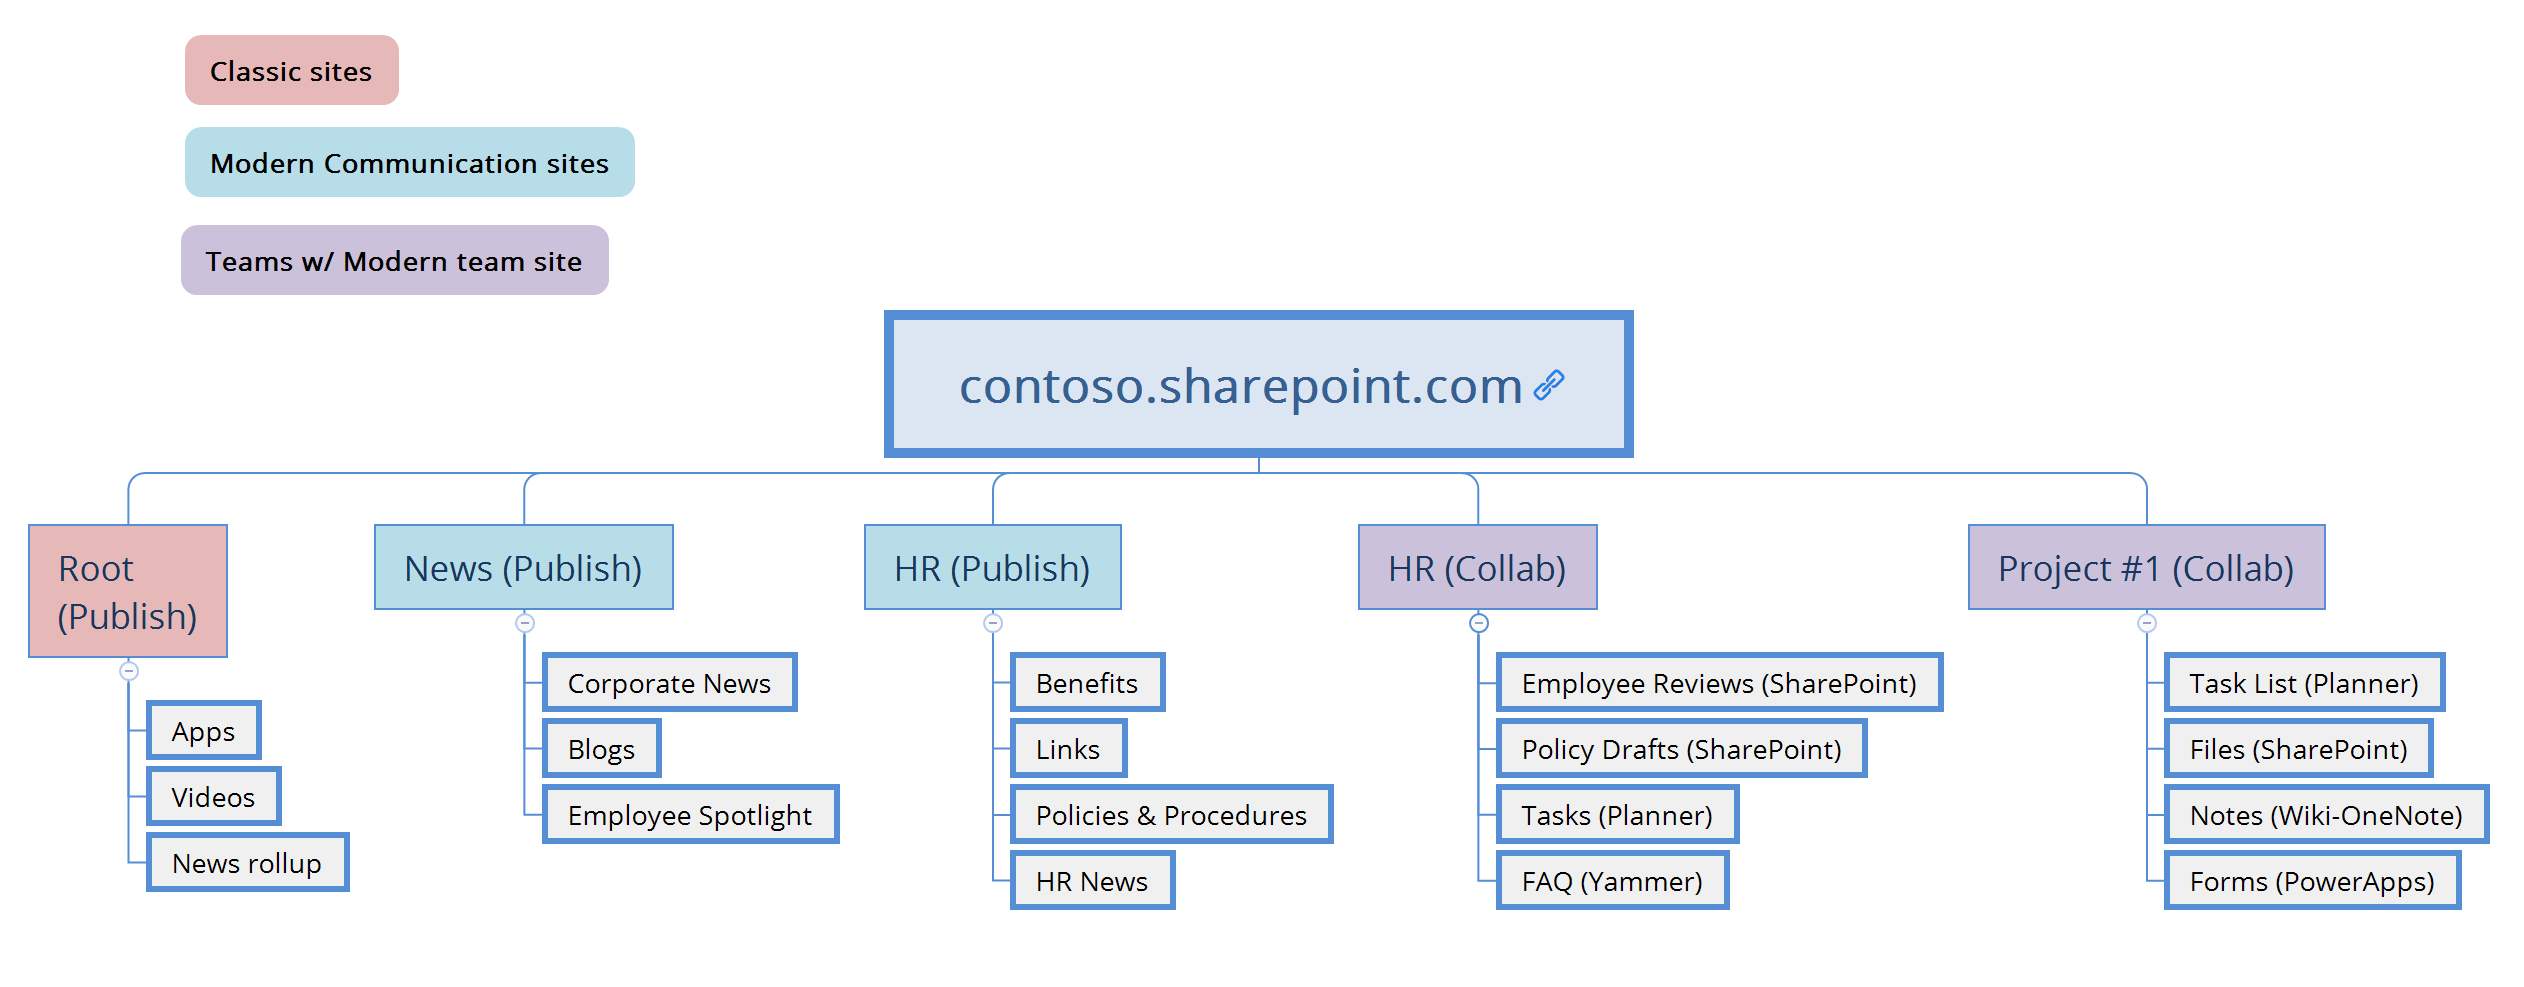 sharepoint 2016 site architecture diagram cms site architecture diagram